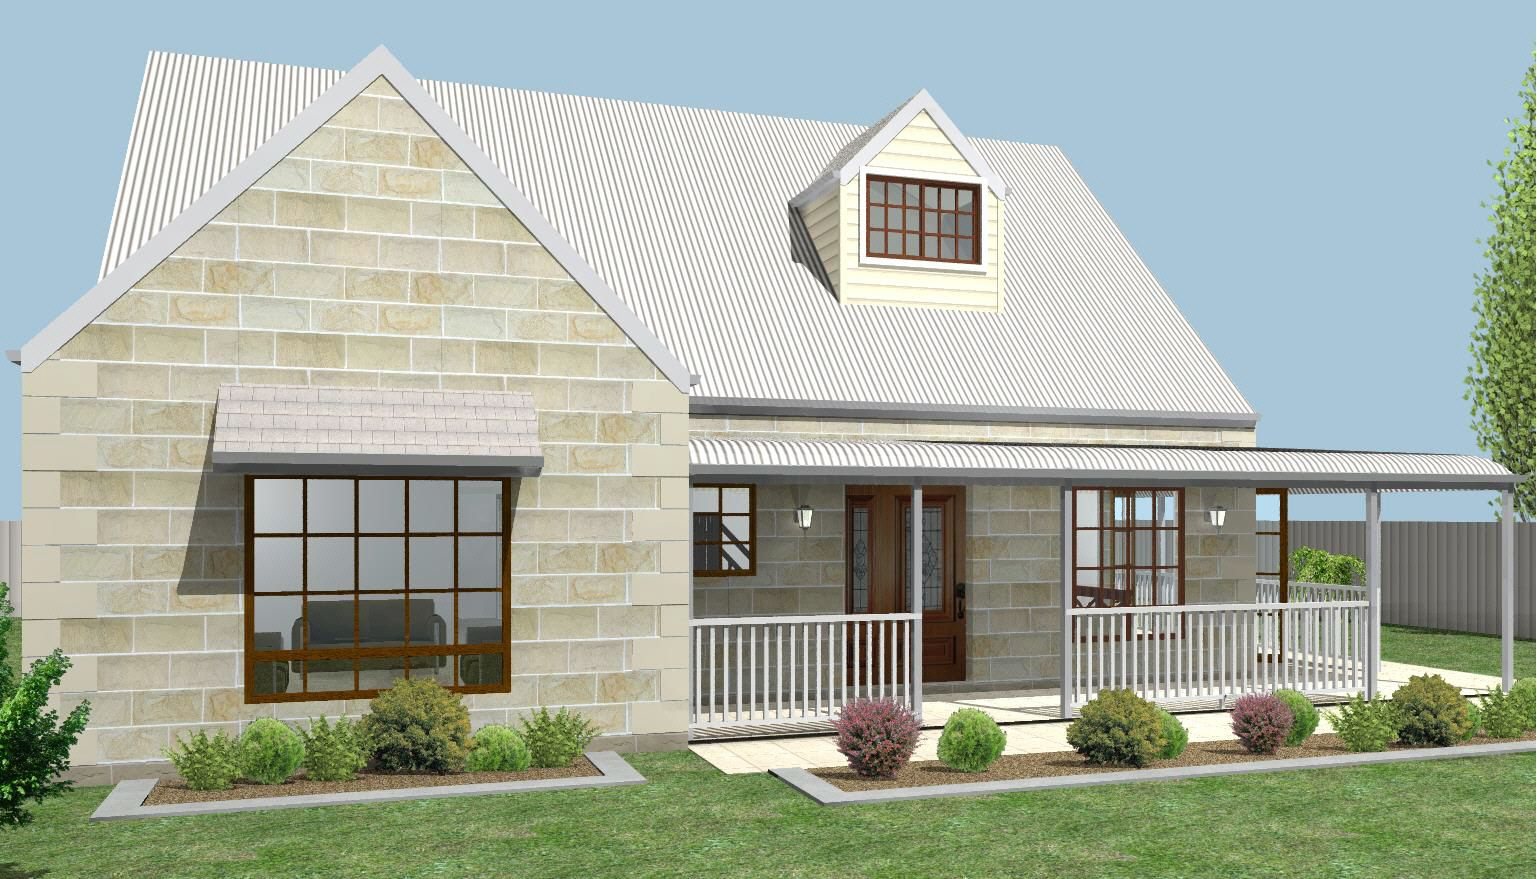 Stone Kit Home Designs The Botany  Visit Wwwlocalbuilderscom - Home design kit